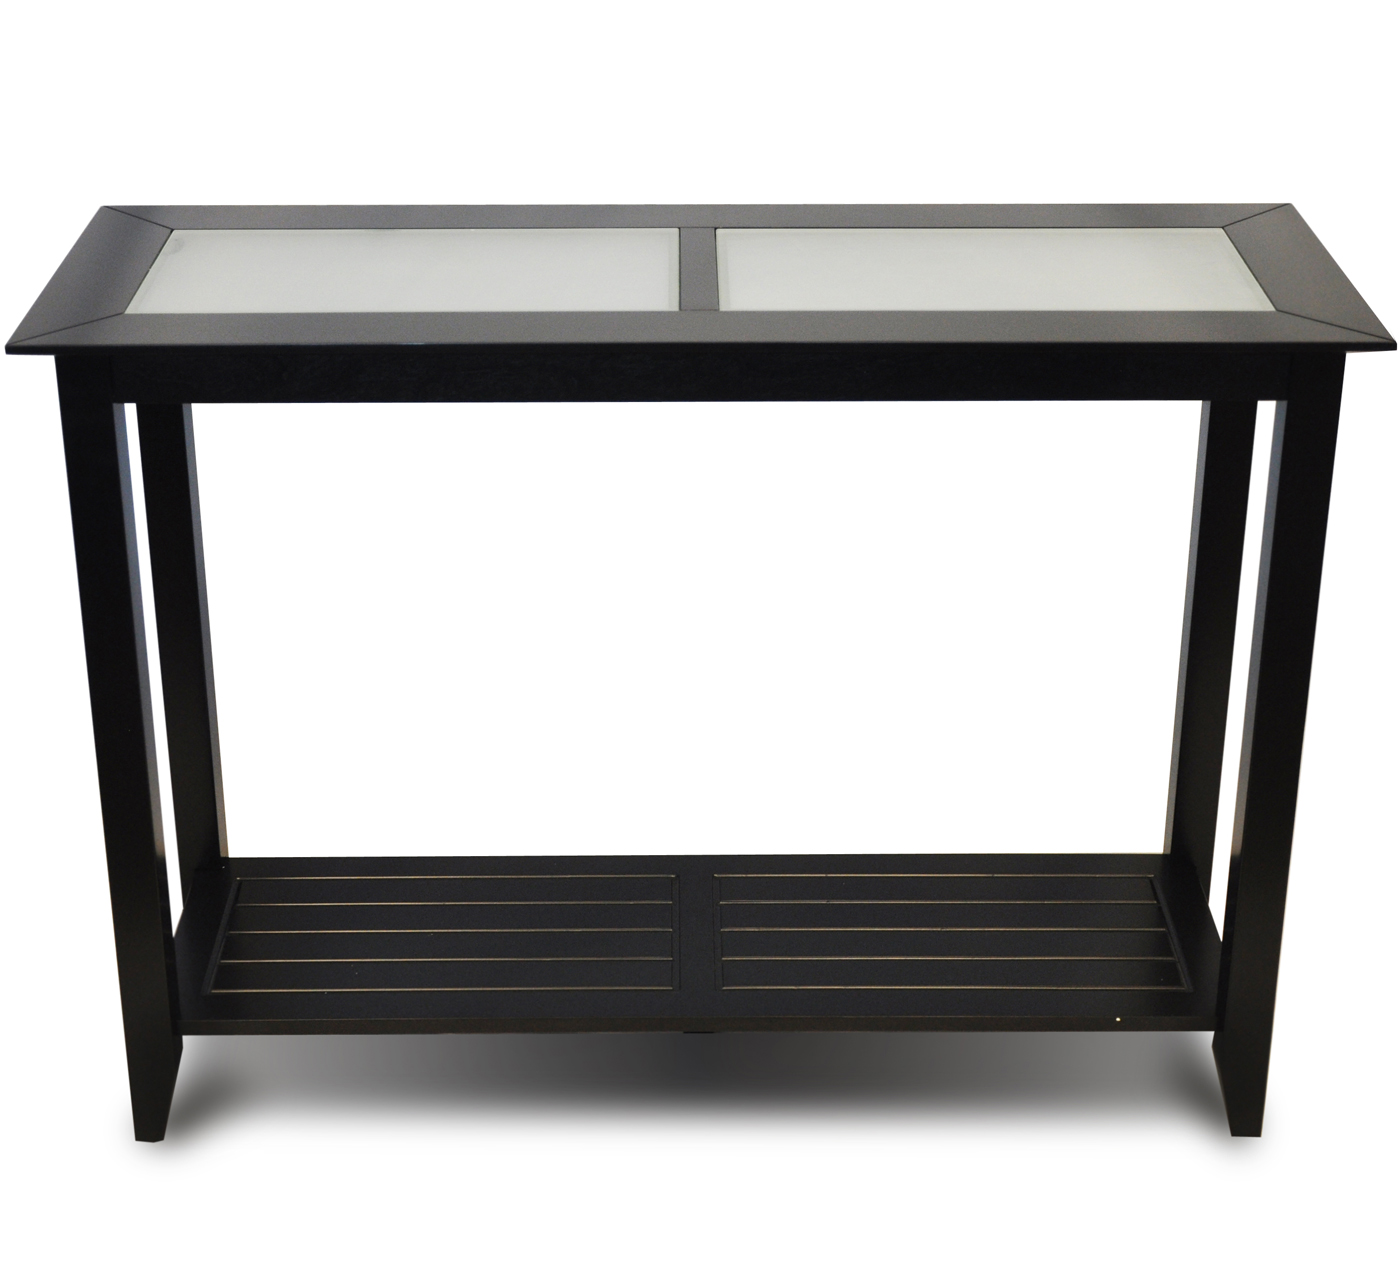 Accent Tables and Console Tables at OrganizeIt